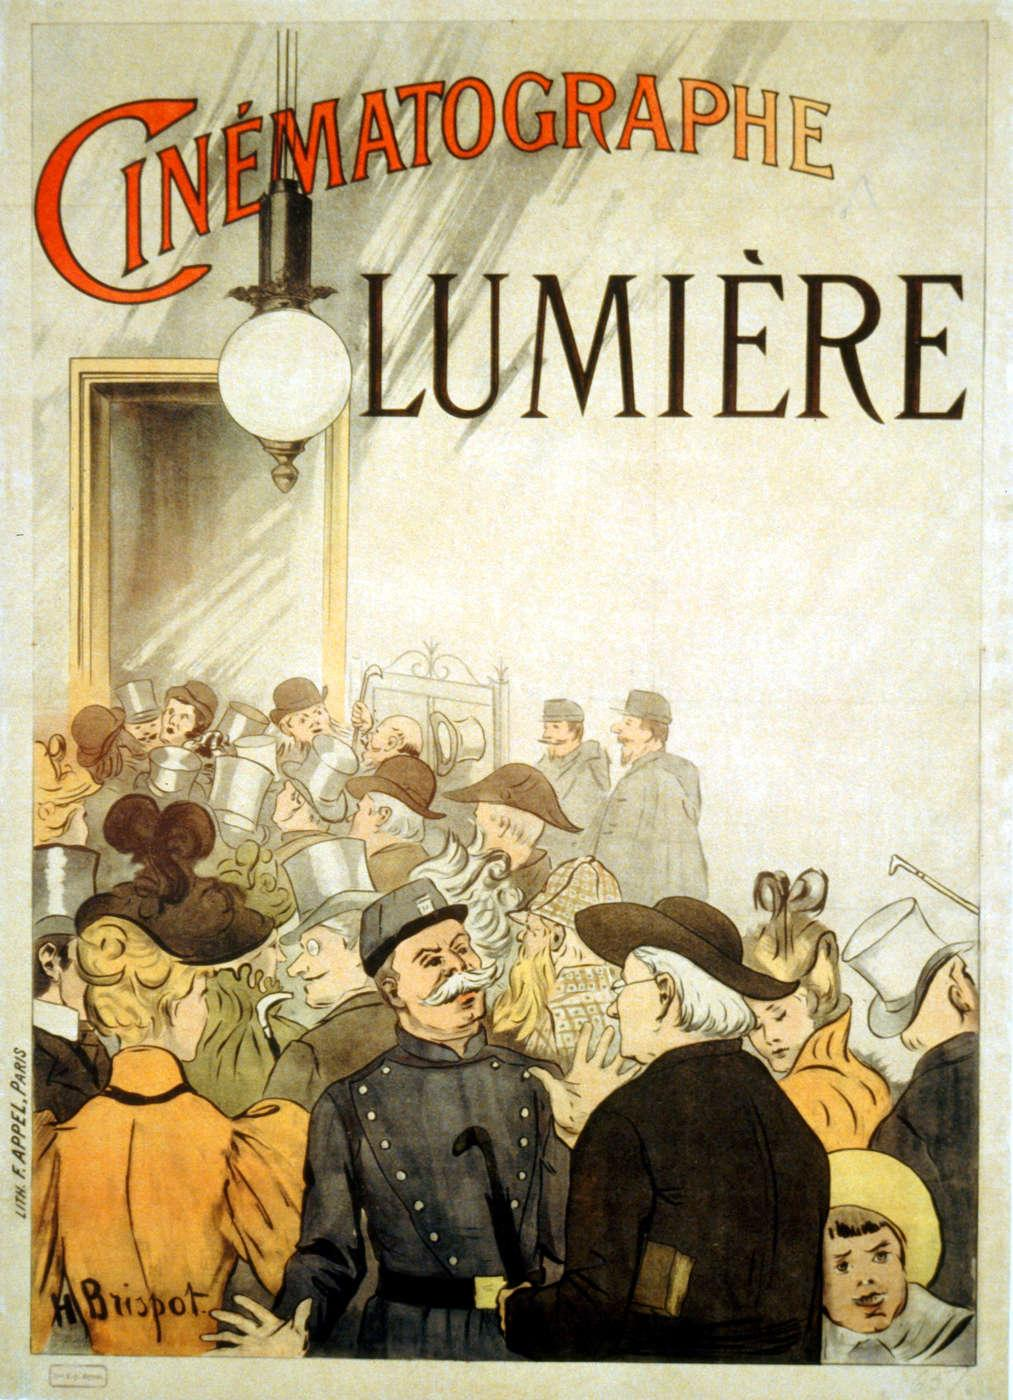 https://upload.wikimedia.org/wikipedia/commons/c/cb/Cinematograph_Lumiere_advertisement_1895.jpg